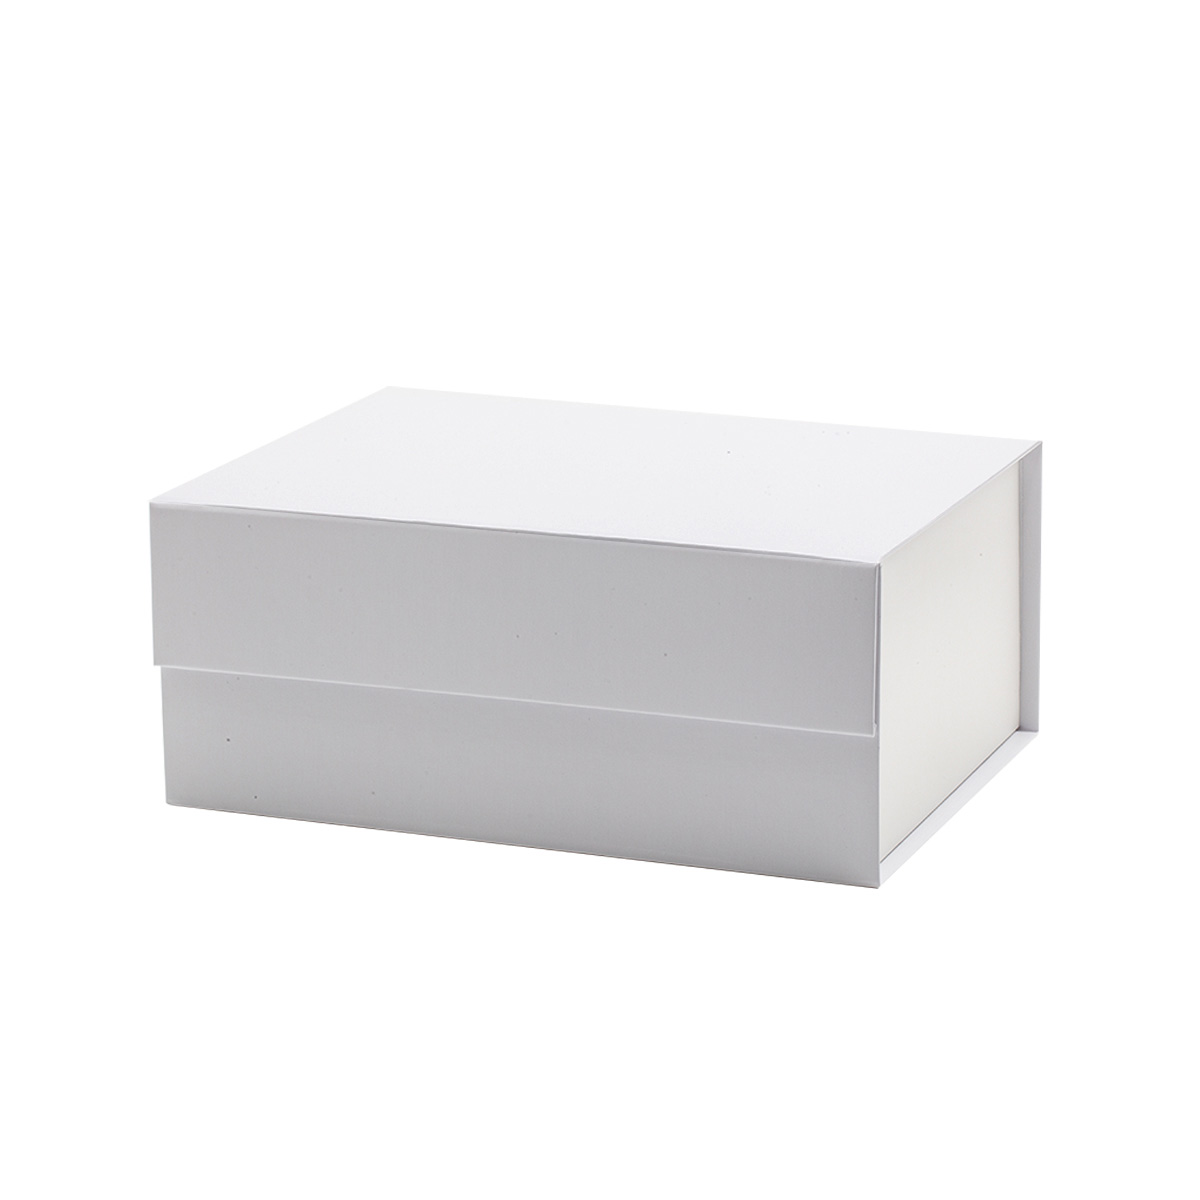 23.5*17*10 White Magnetic Flap Gift Box